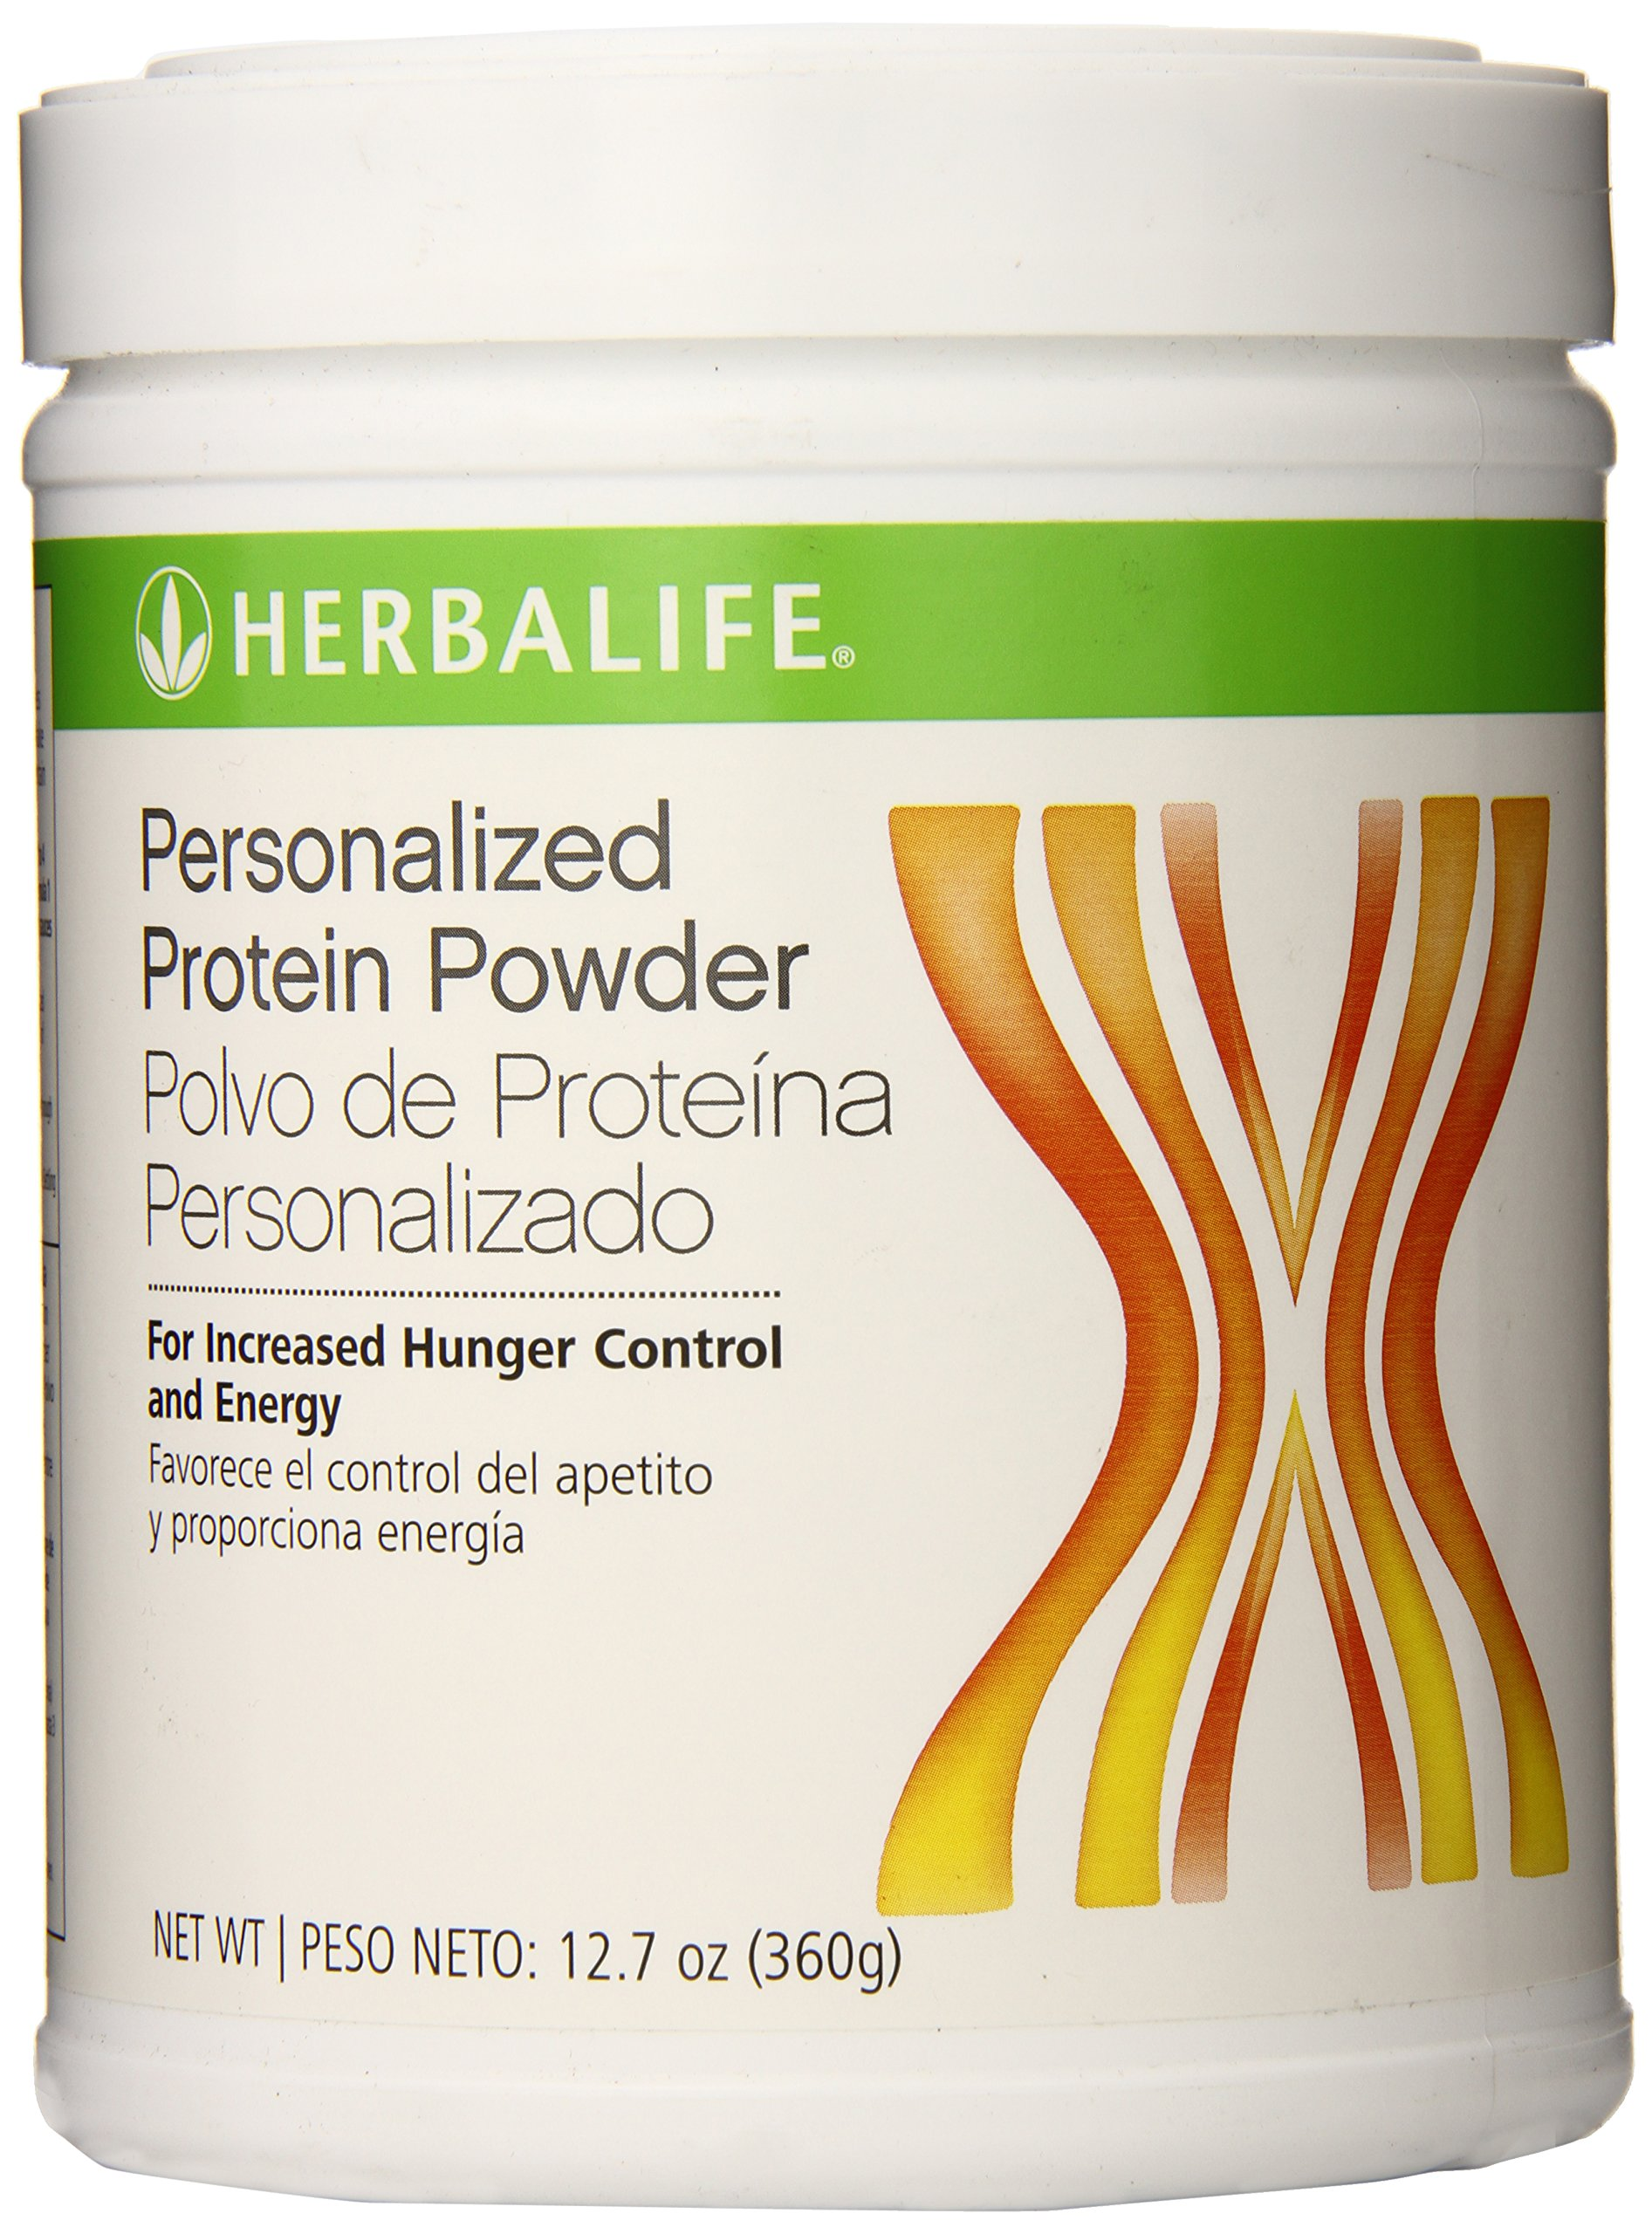 Herbalife Personalized Protein Powder (360G) by Herbalife